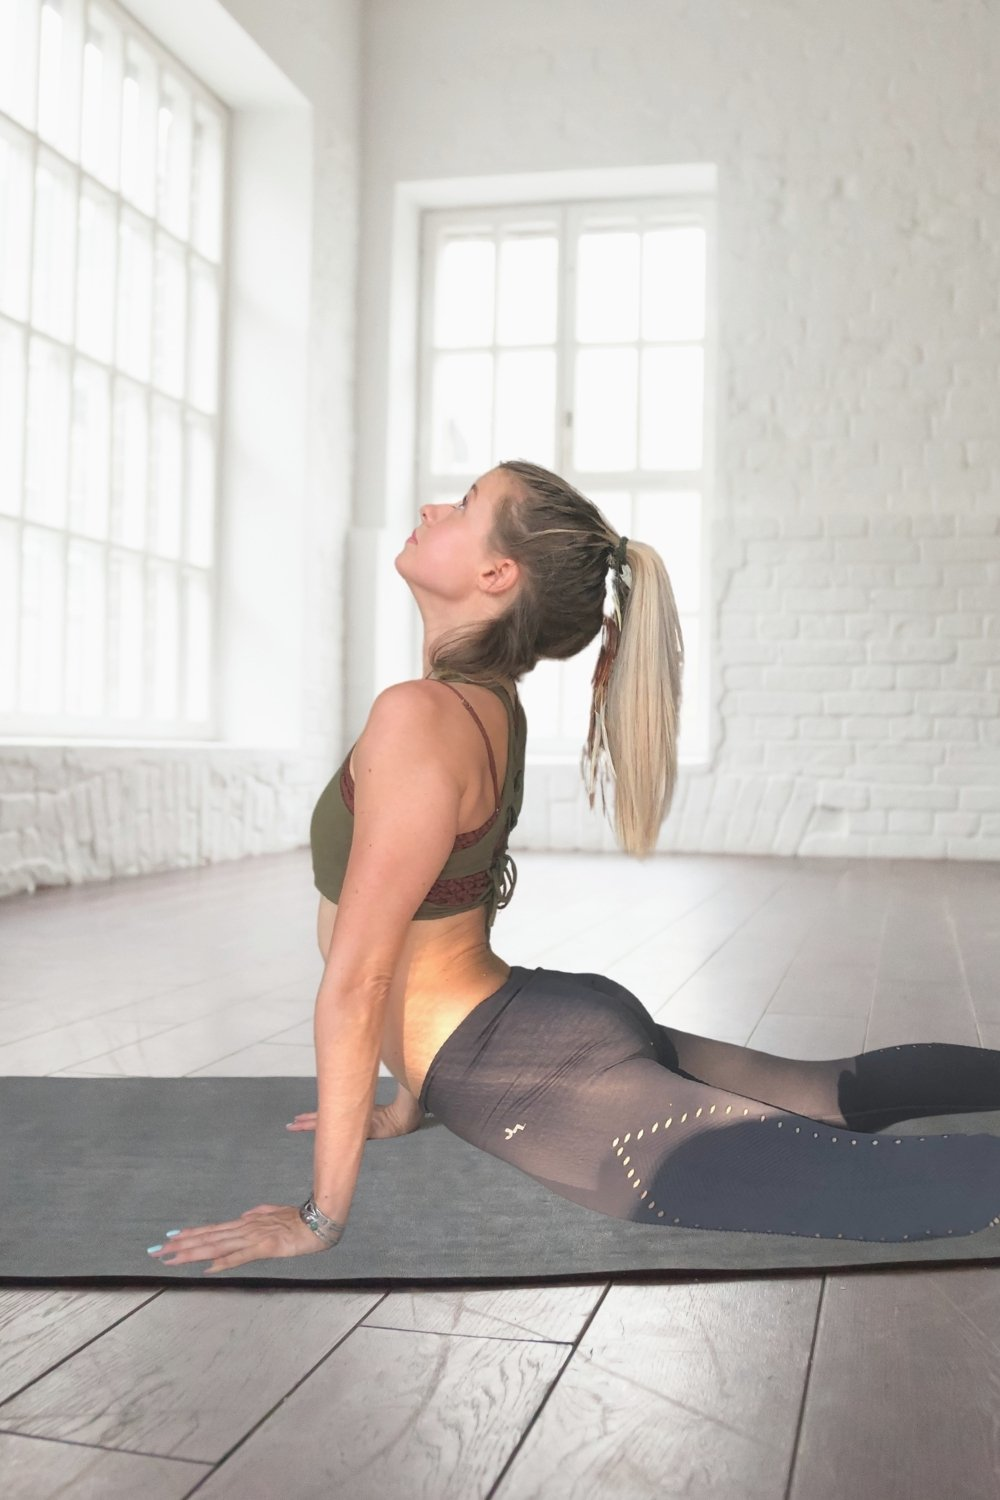 A girl in upward facing dog yoga pose with an L shaped back